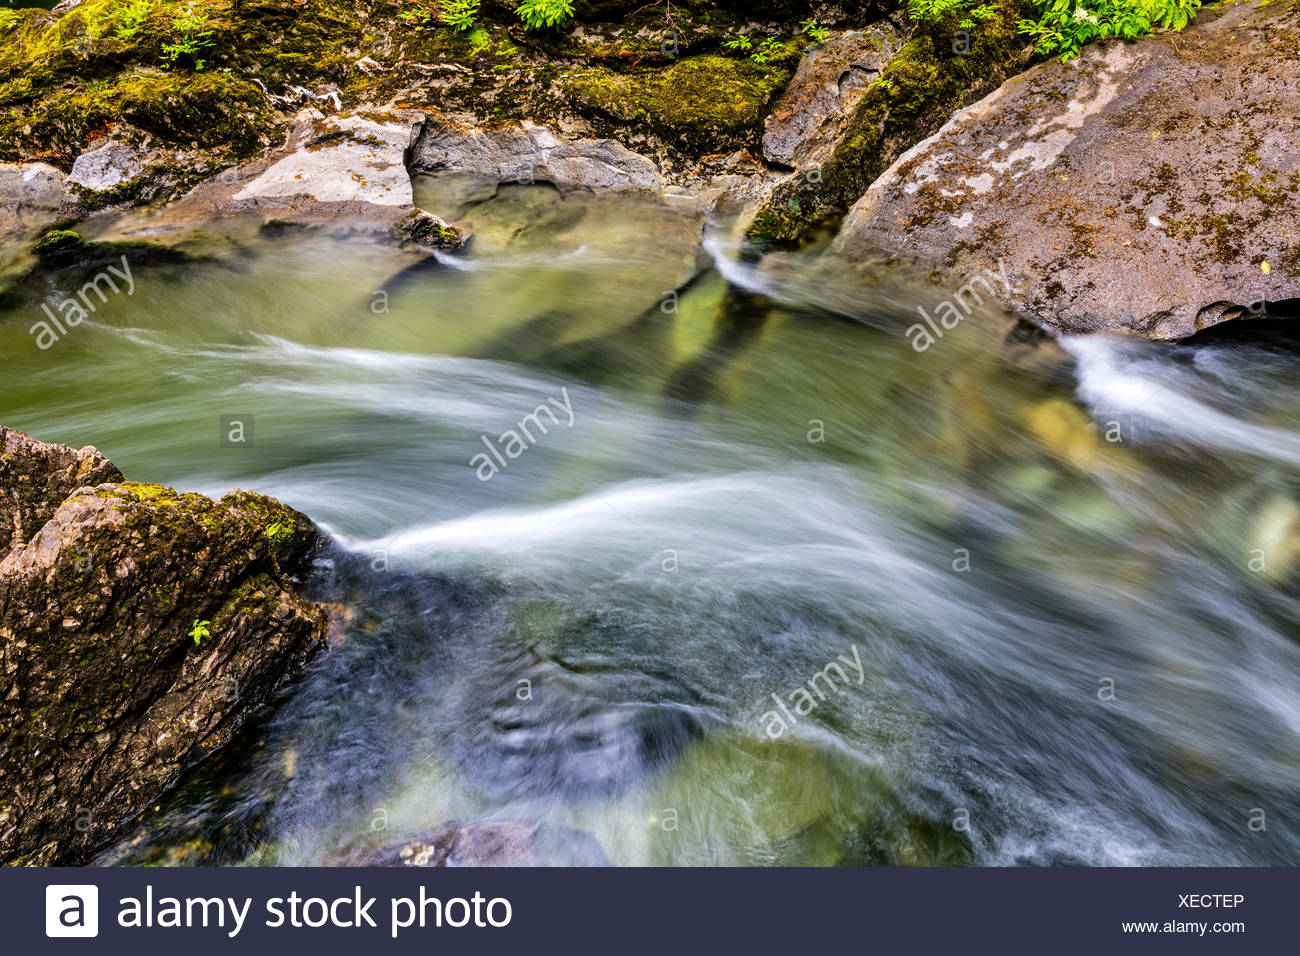 Atluck Creek cutting through the cast limestone creating Huson Natural Bridge Cave in Little Huson Cave Regional Park, Northern Vancouver Island, British Columbia, Canada - Stock Image